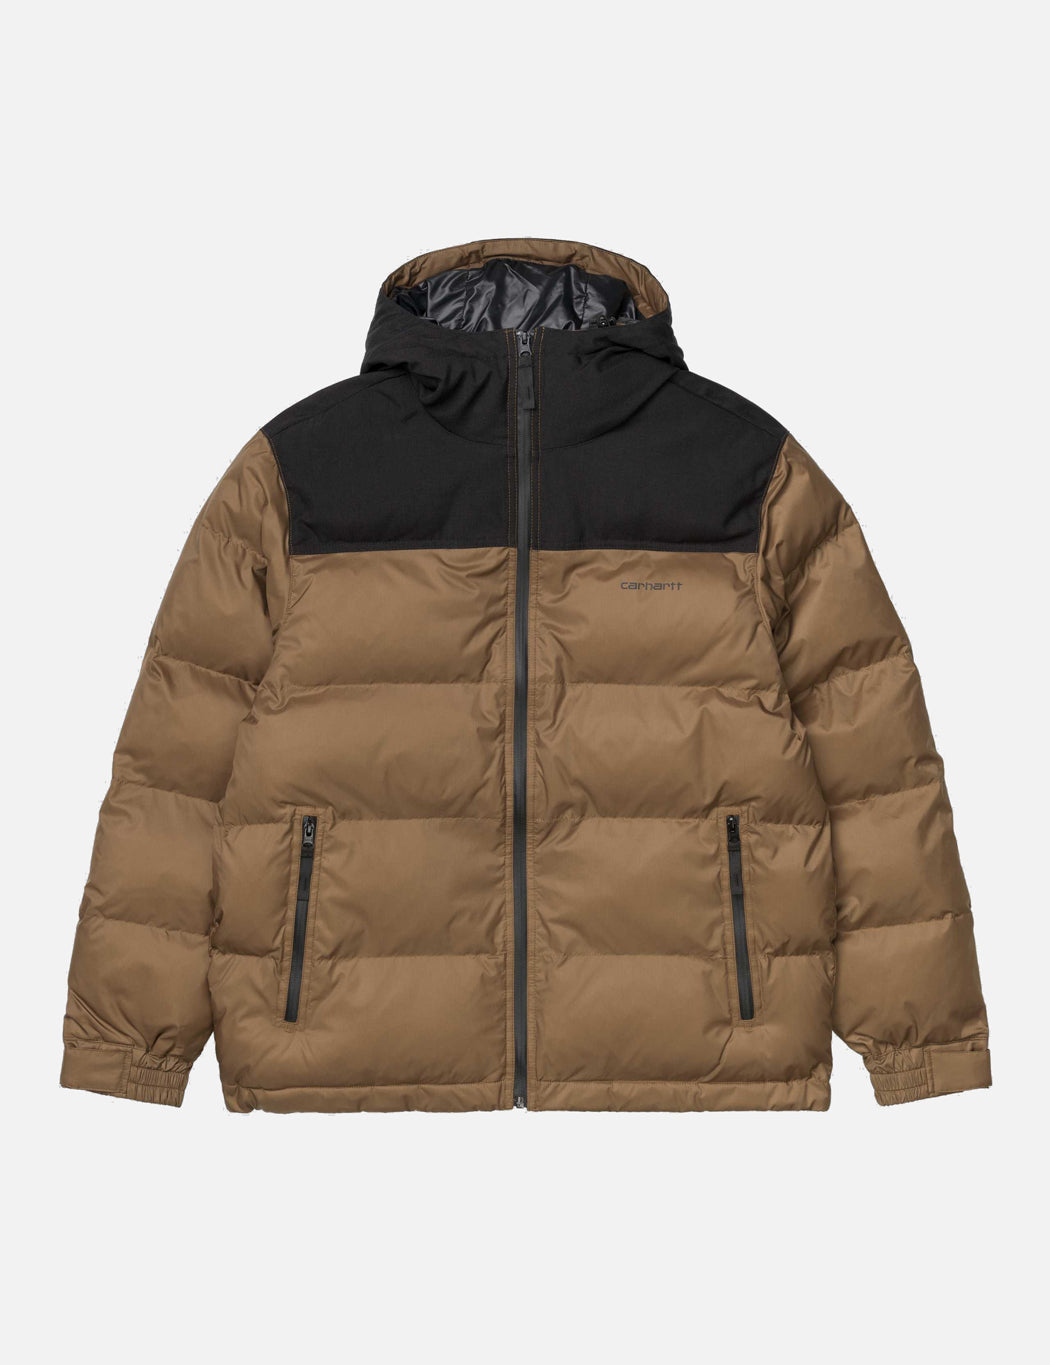 Carhartt-WIP Larsen Jacket - Hamilton Brown | URBAN EXCESS.